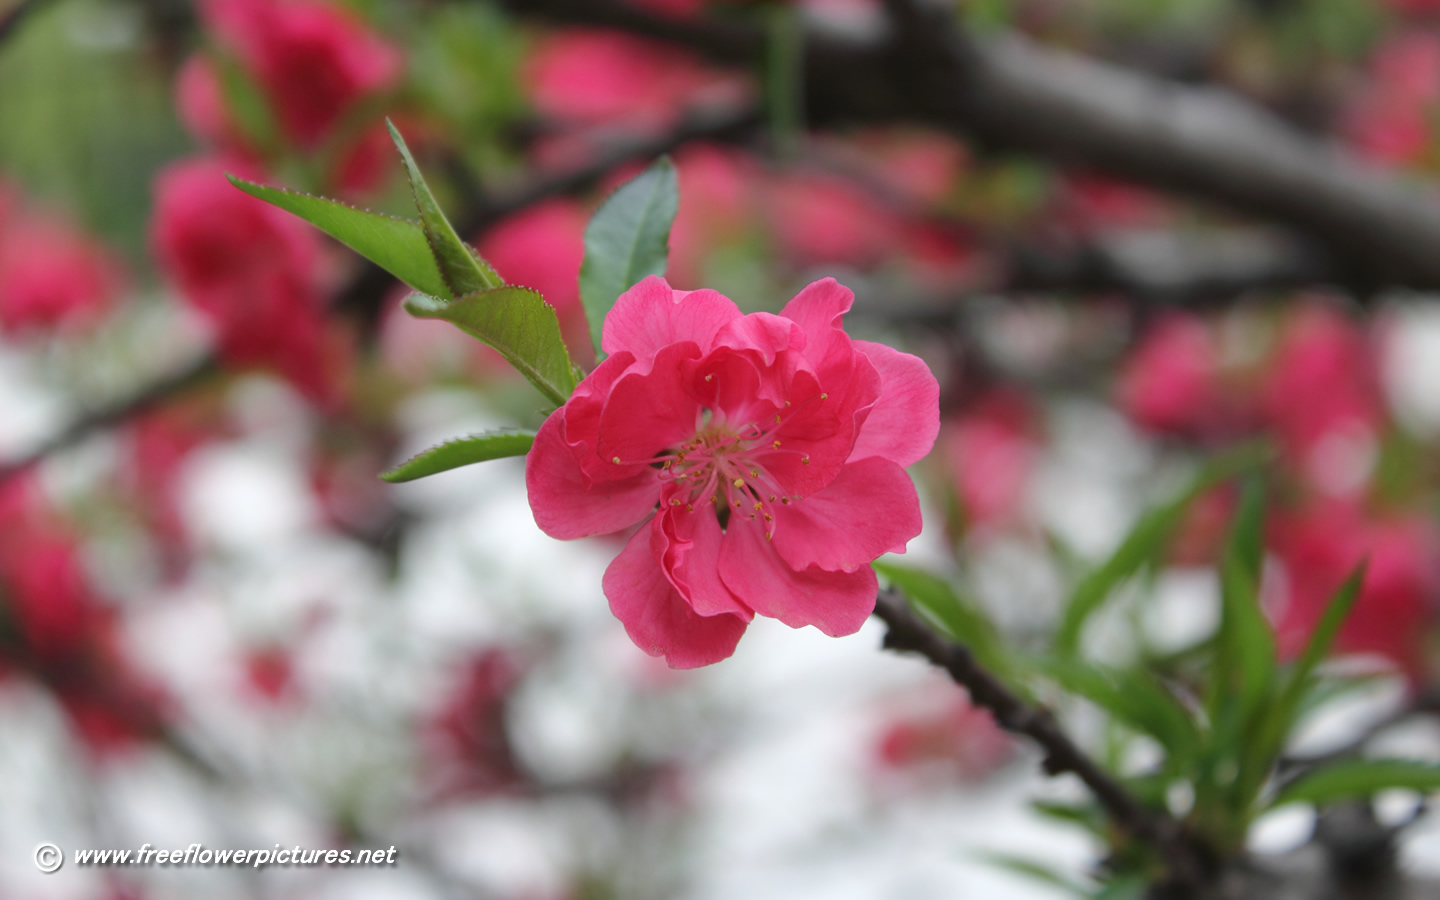 peach blossoms wallpaper - photo #21